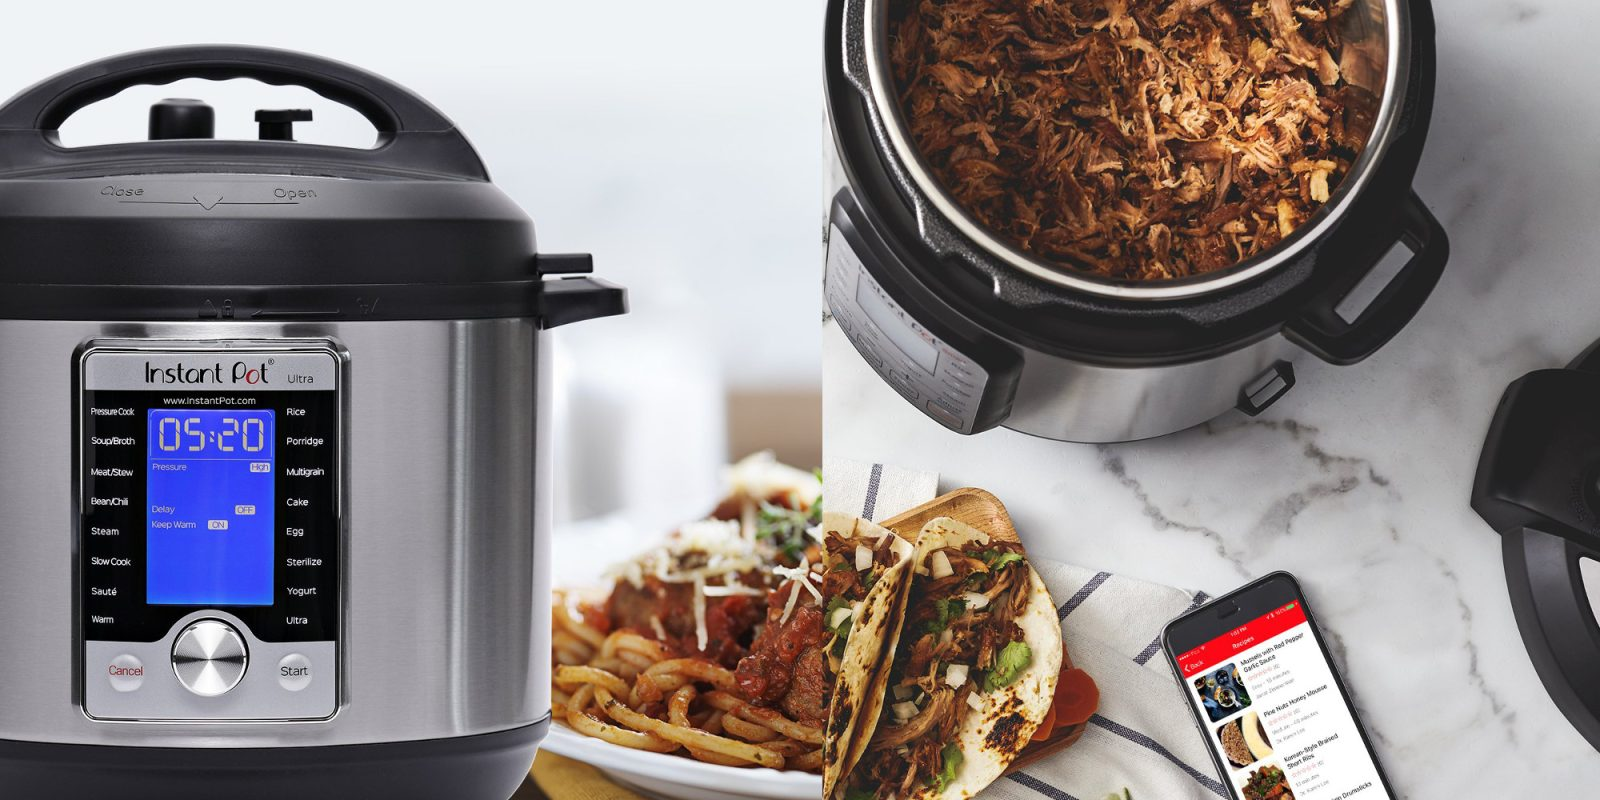 Black Friday Home Goods: We predict 2019's Instant Pot, Anova deals, and more